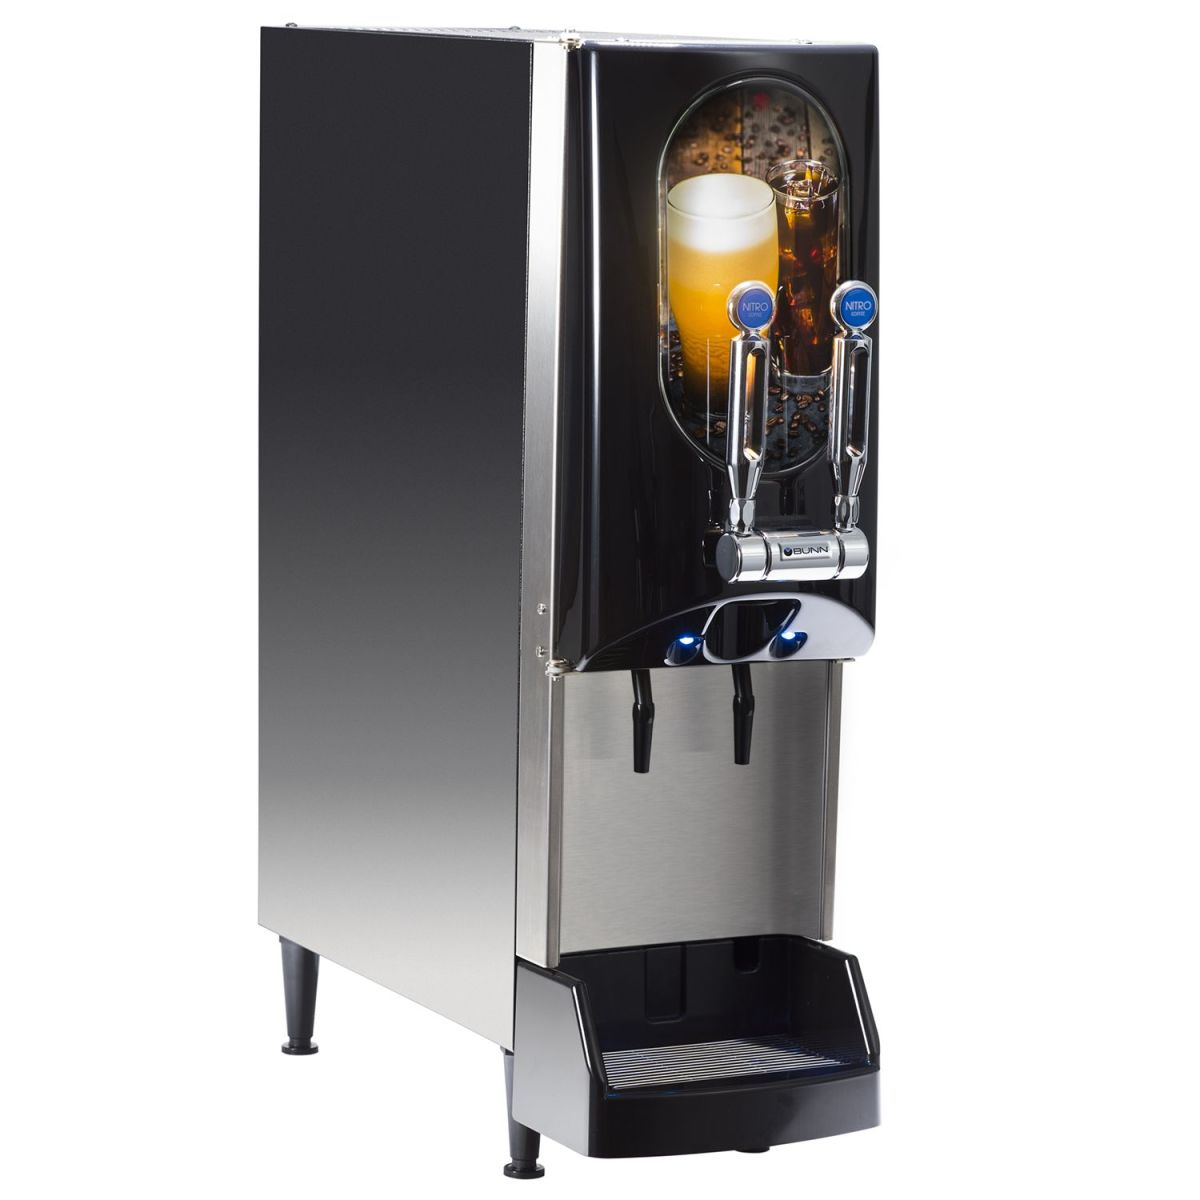 NITRON® Cold Draft All Nitro 4:1-12:1, with Removable Door Graphic